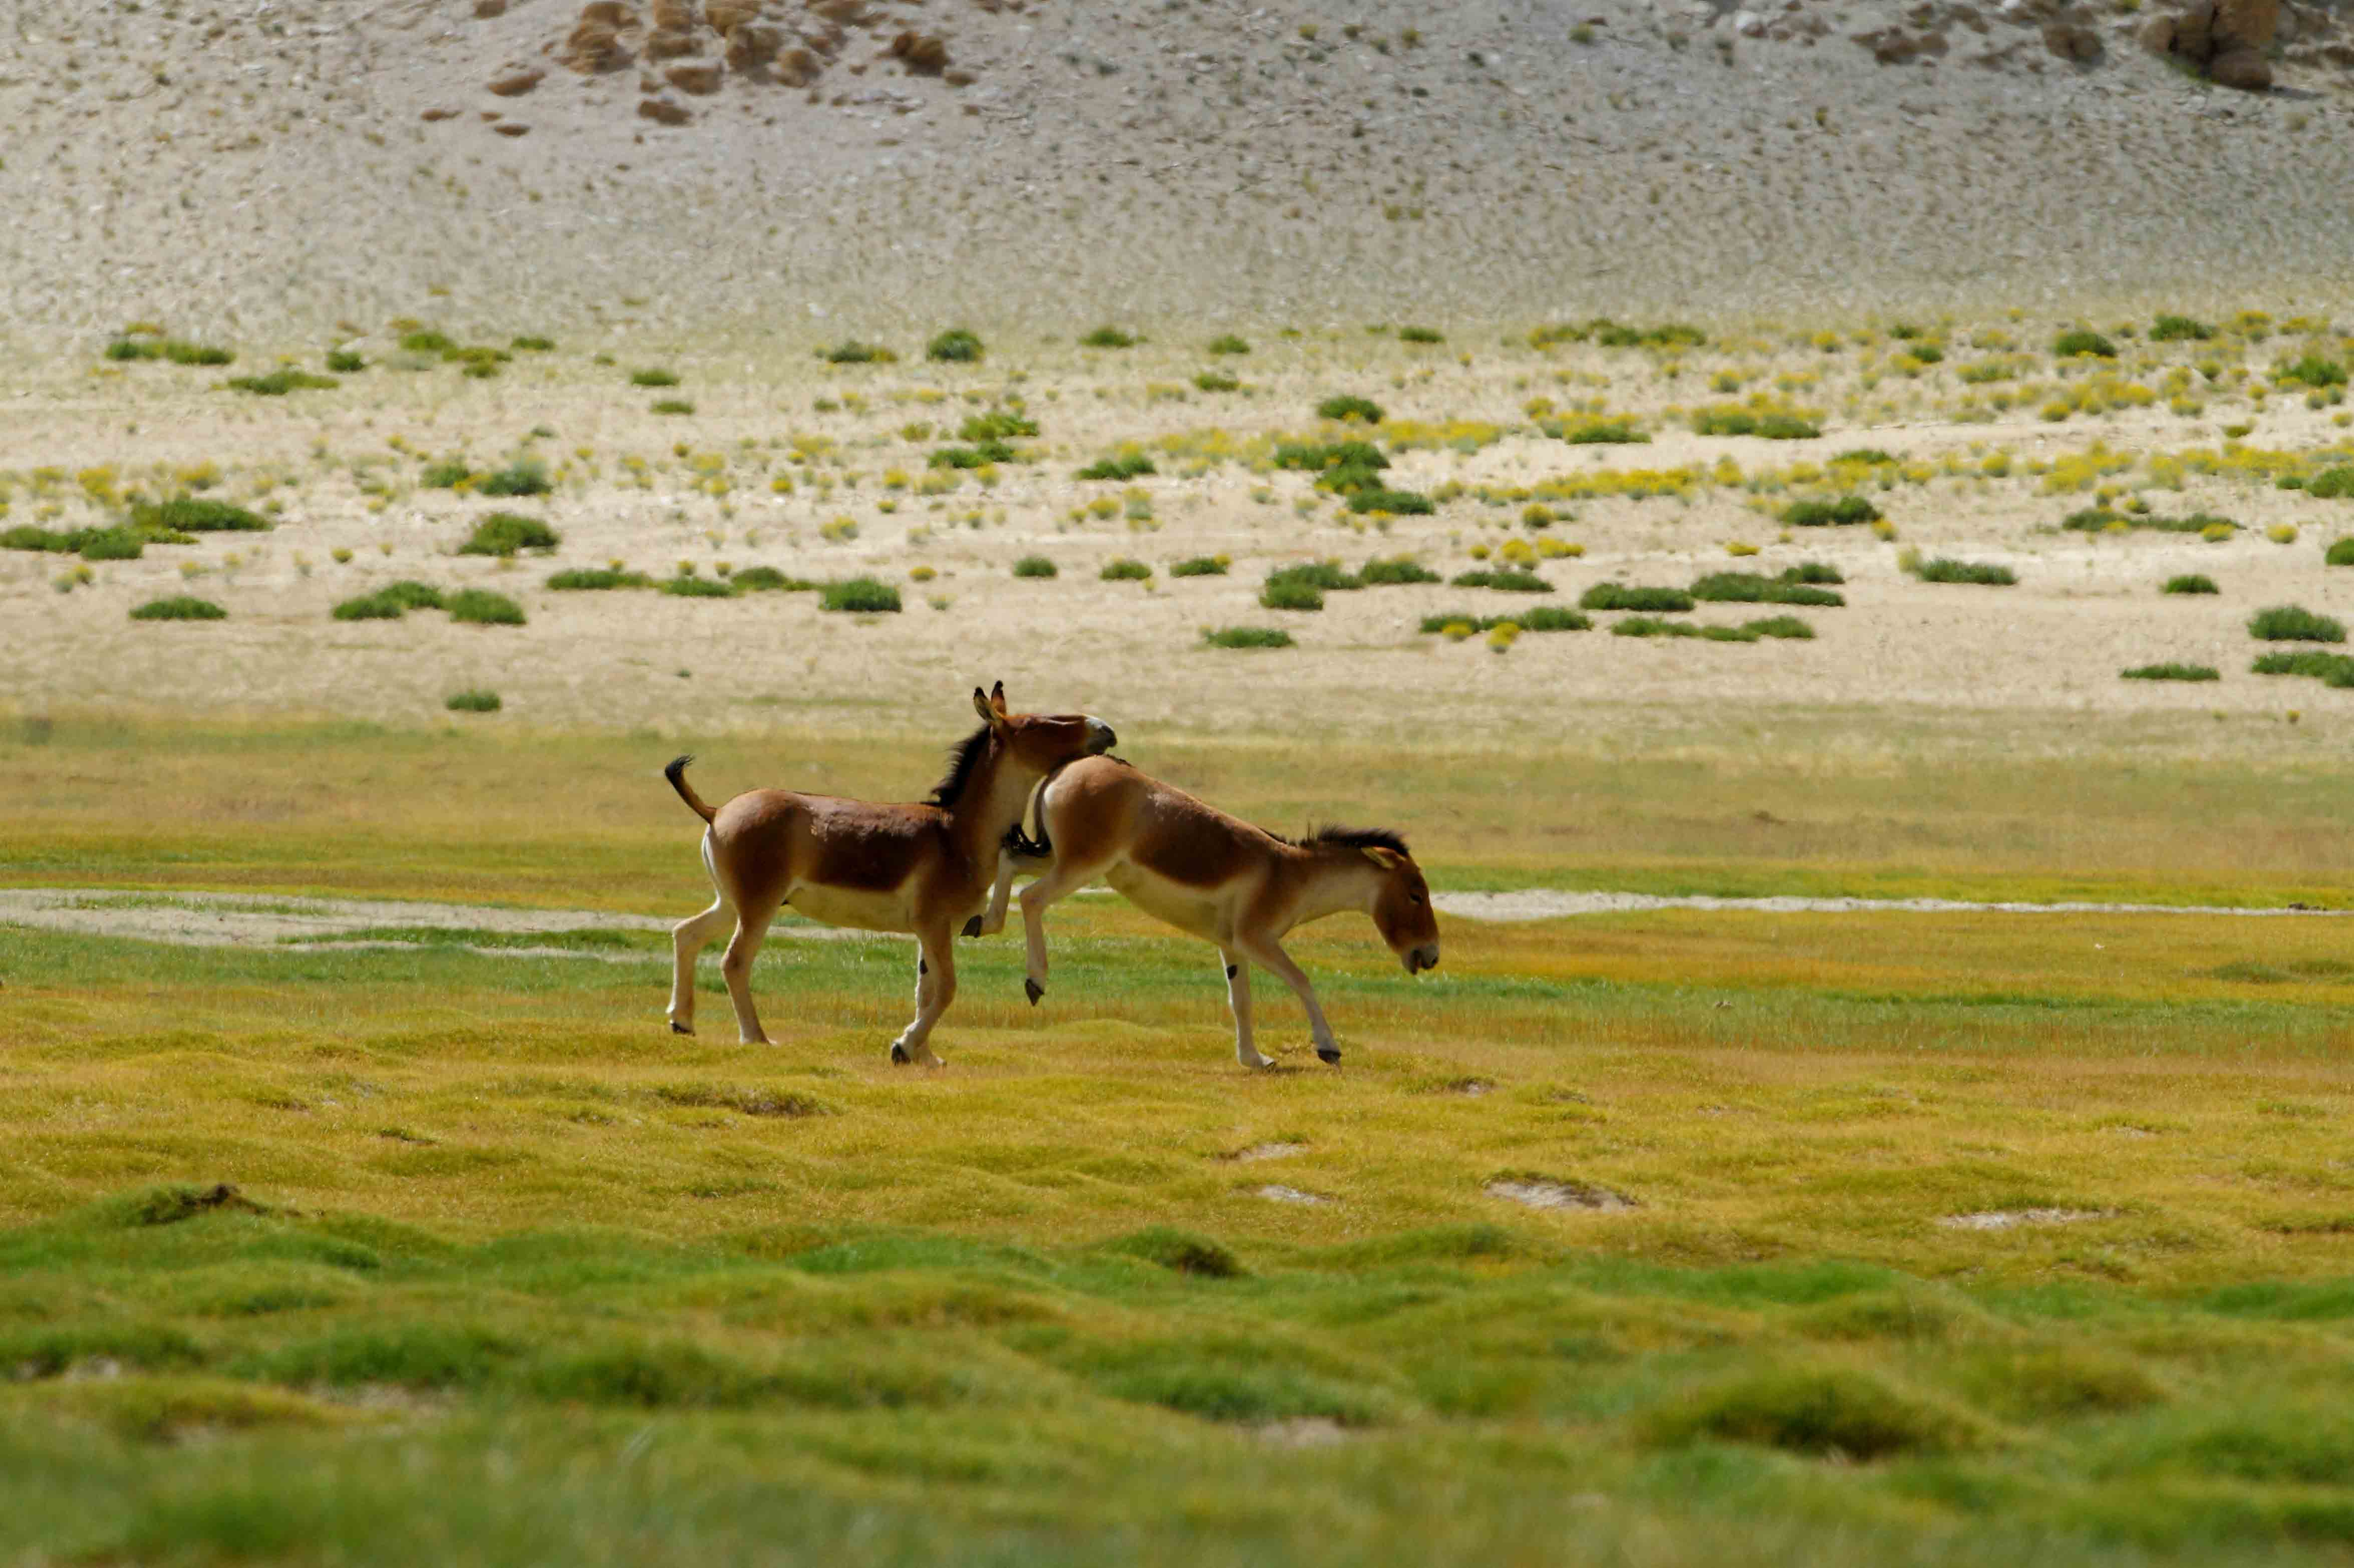 With grass in abundance, summers in Changthang are less trying times for the kiang, and they can often be seen in a playful mood. Photo: Shivang Mehta